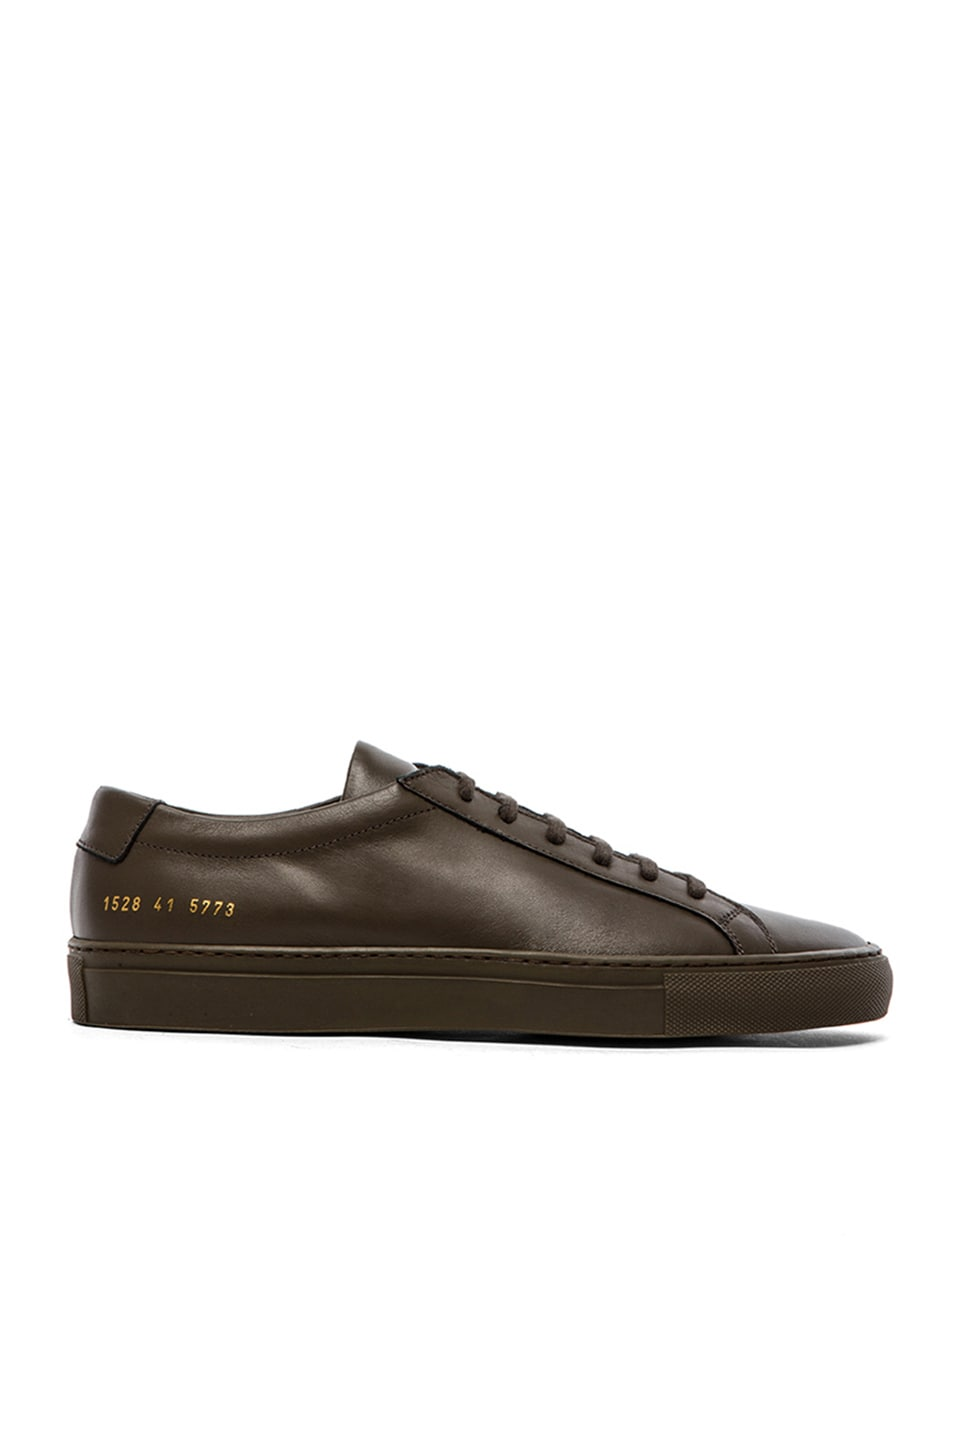 Common Projects Original Achilles Low in Army Green